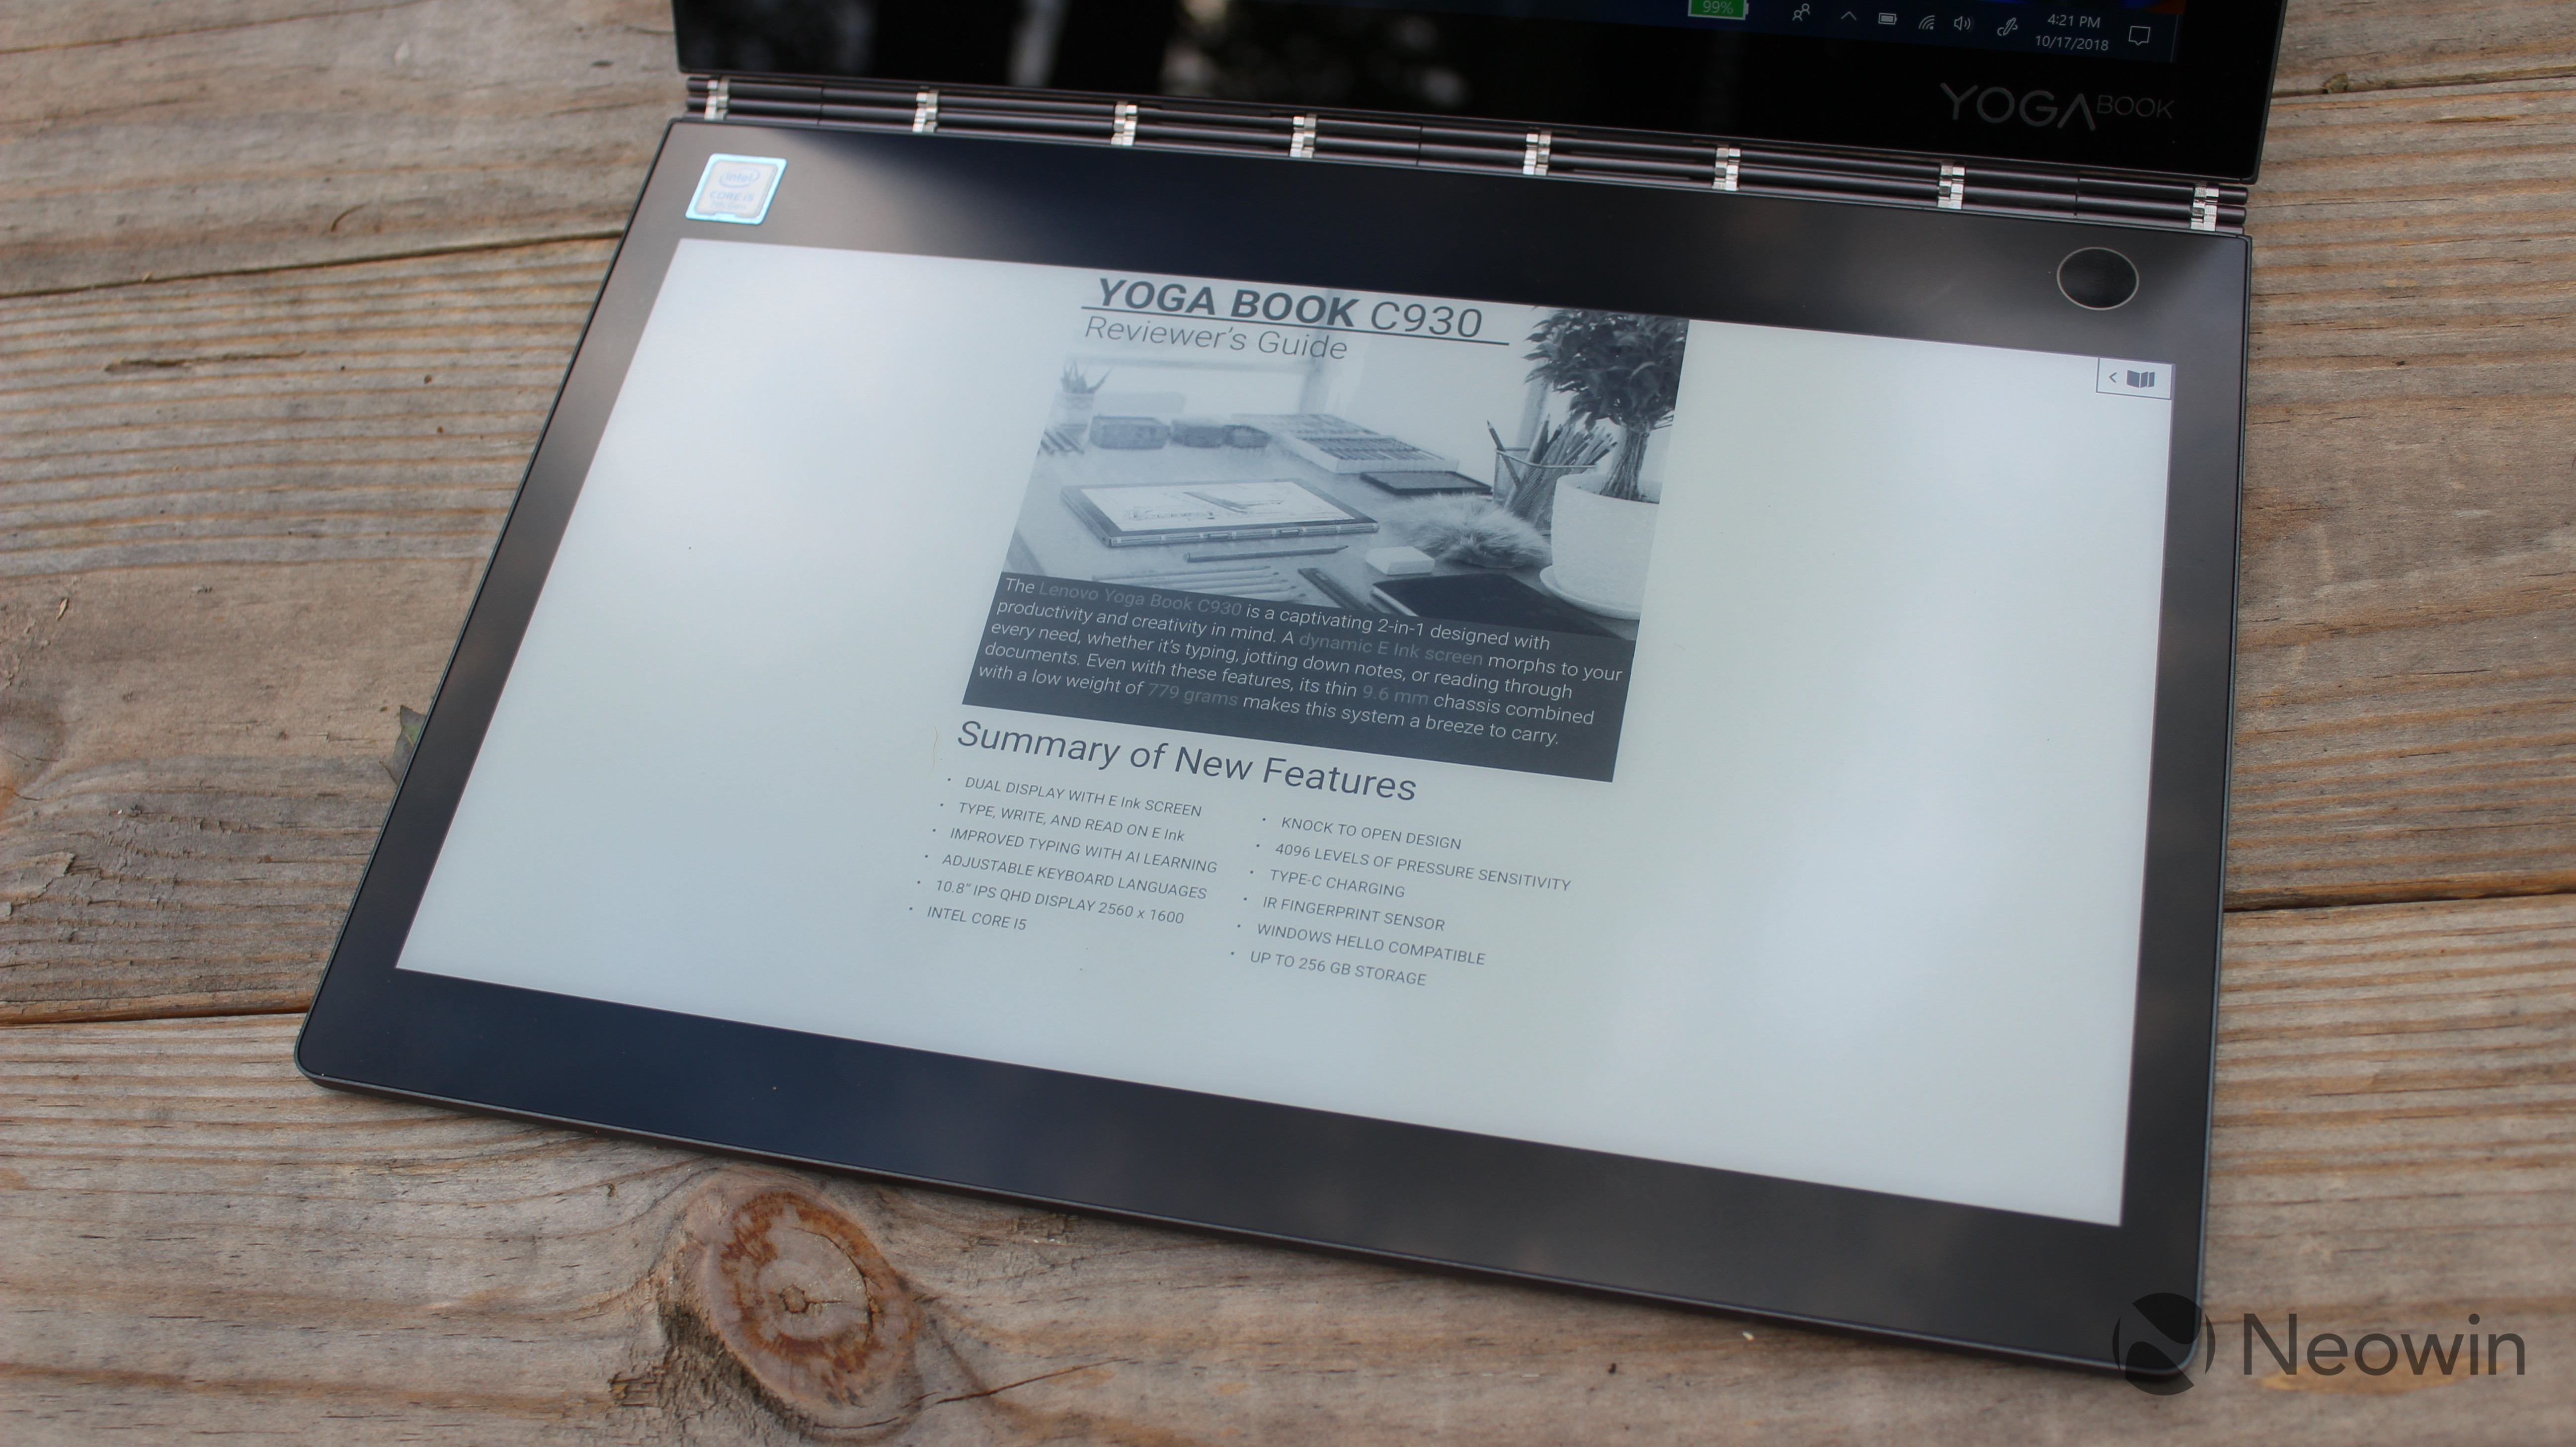 Lenovo Yoga Book C930 review: It's so much better than the first one